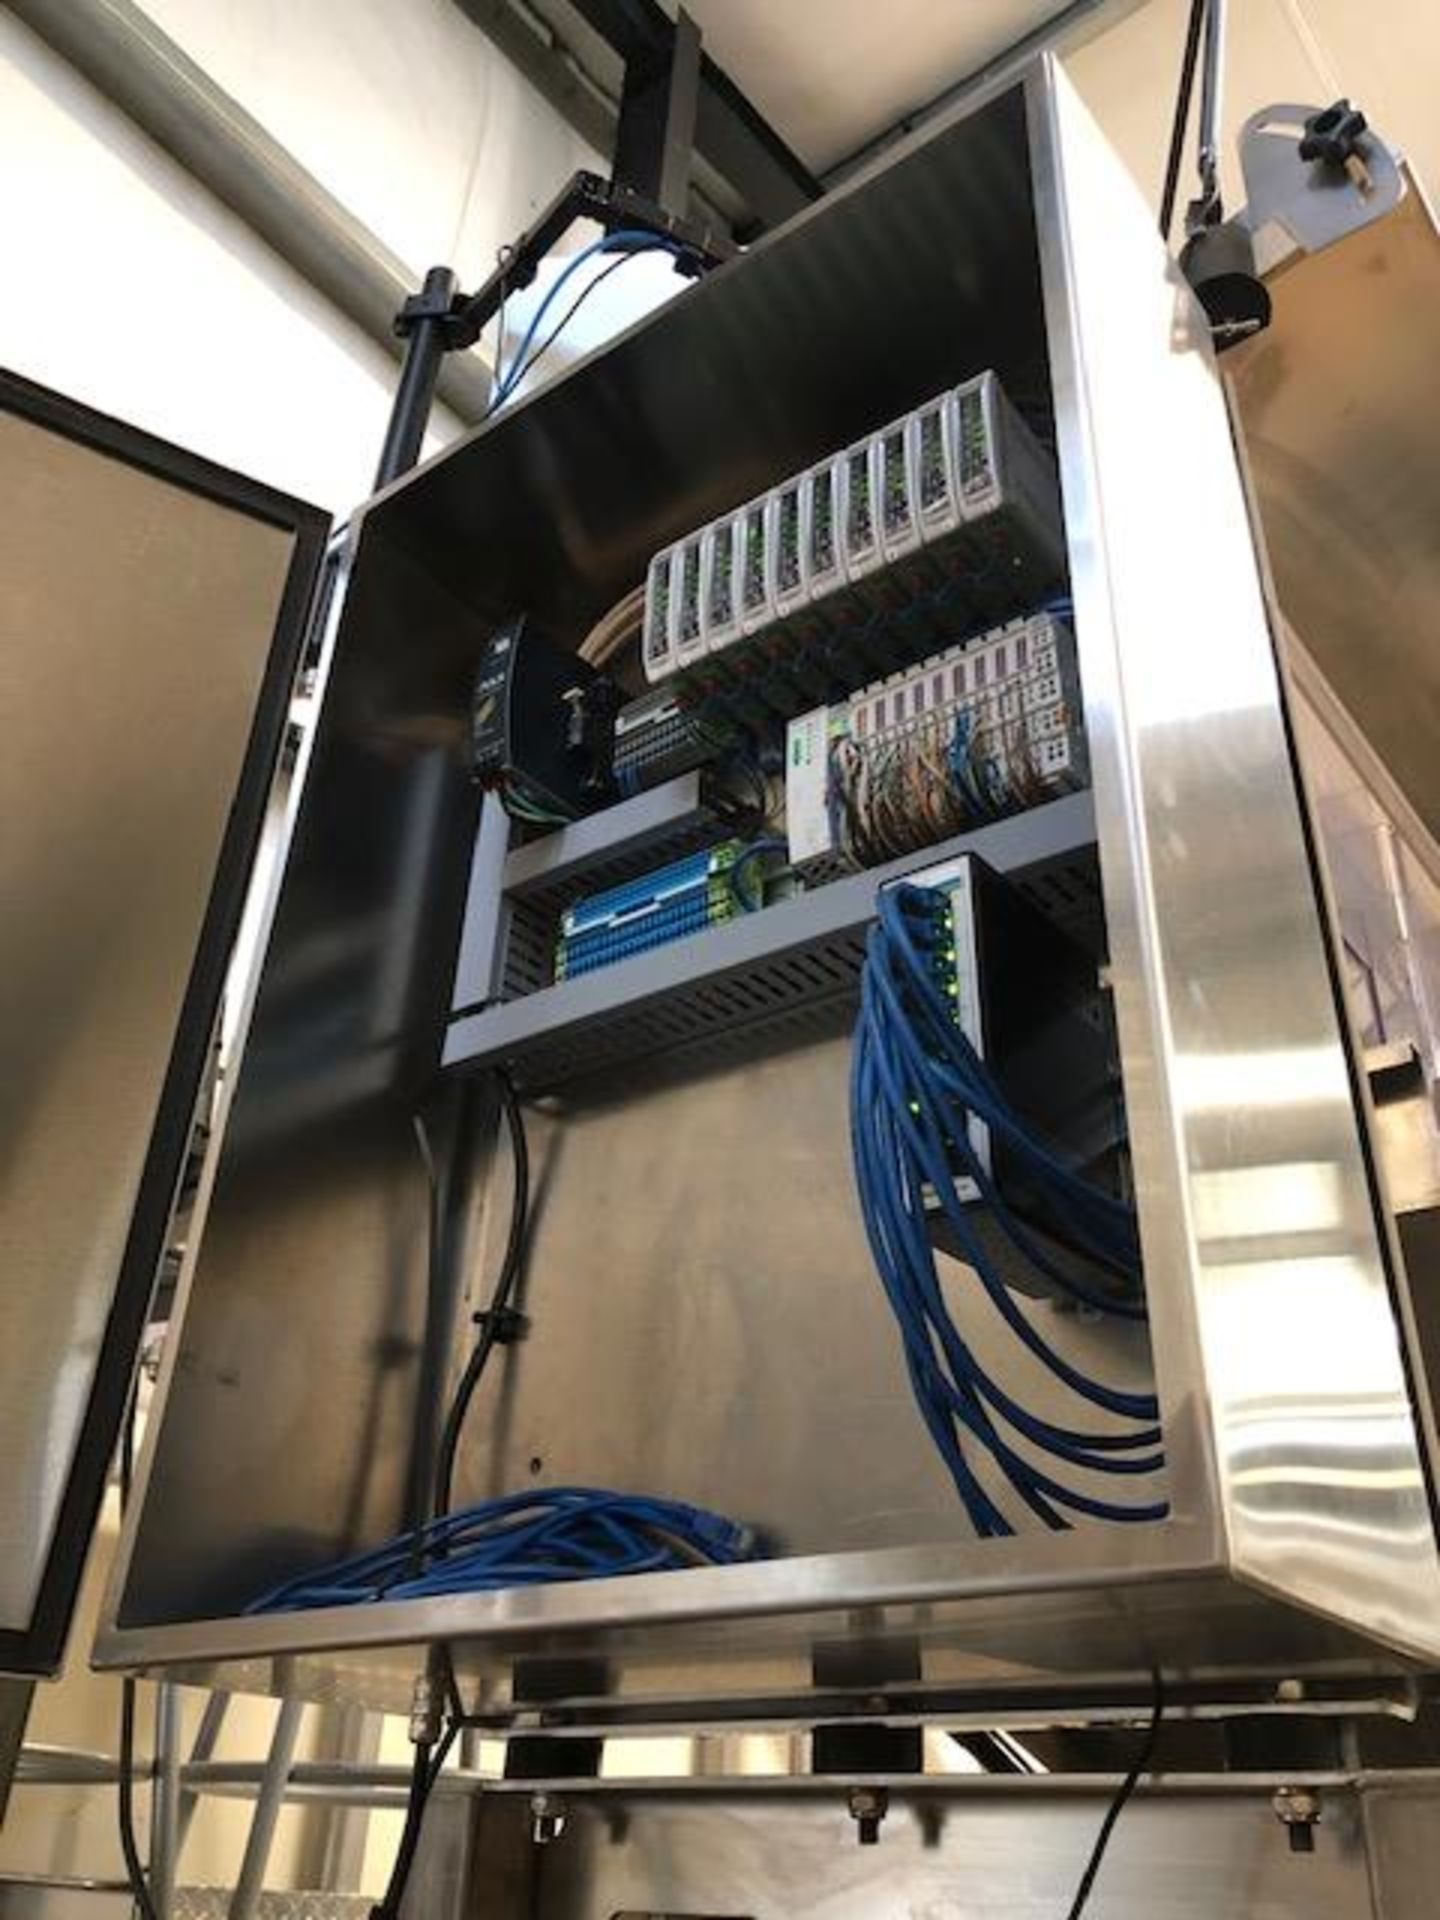 Used-Green Vault Systems Precision Batcher for Batching & Packaging Flower w/ Air Compressor - Image 19 of 23